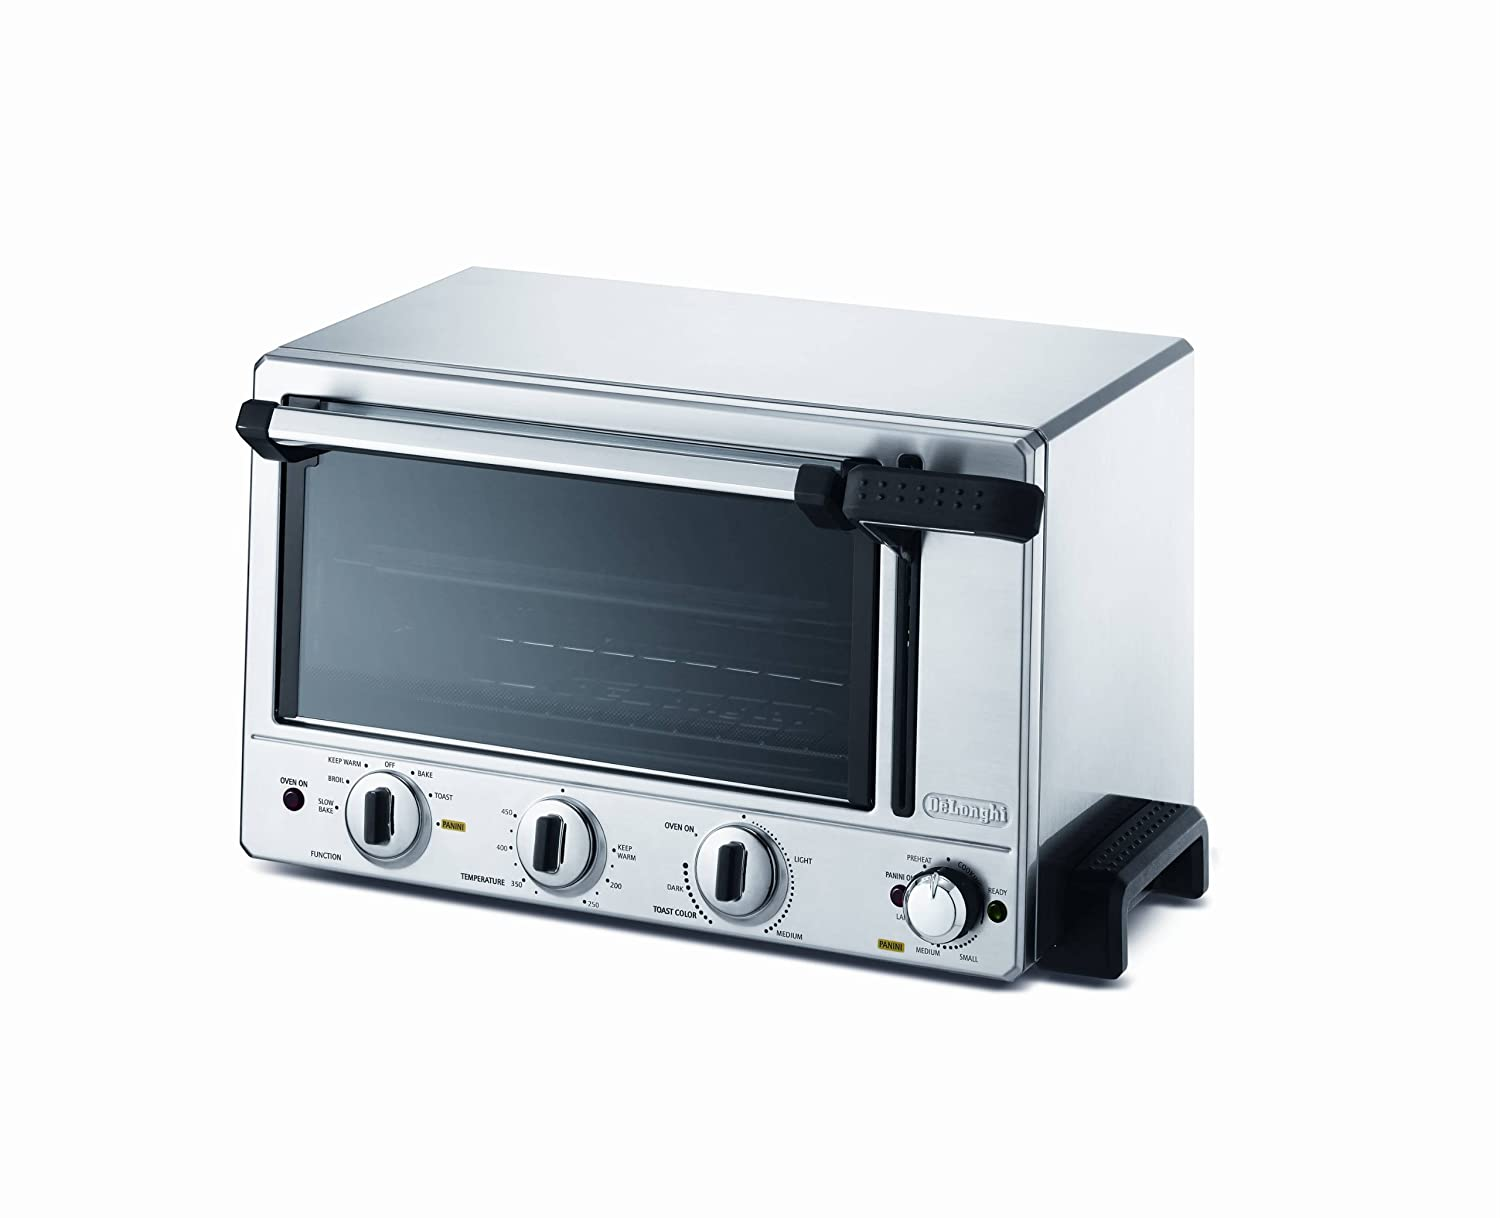 DeLonghi EOP2046 Toaster Oven